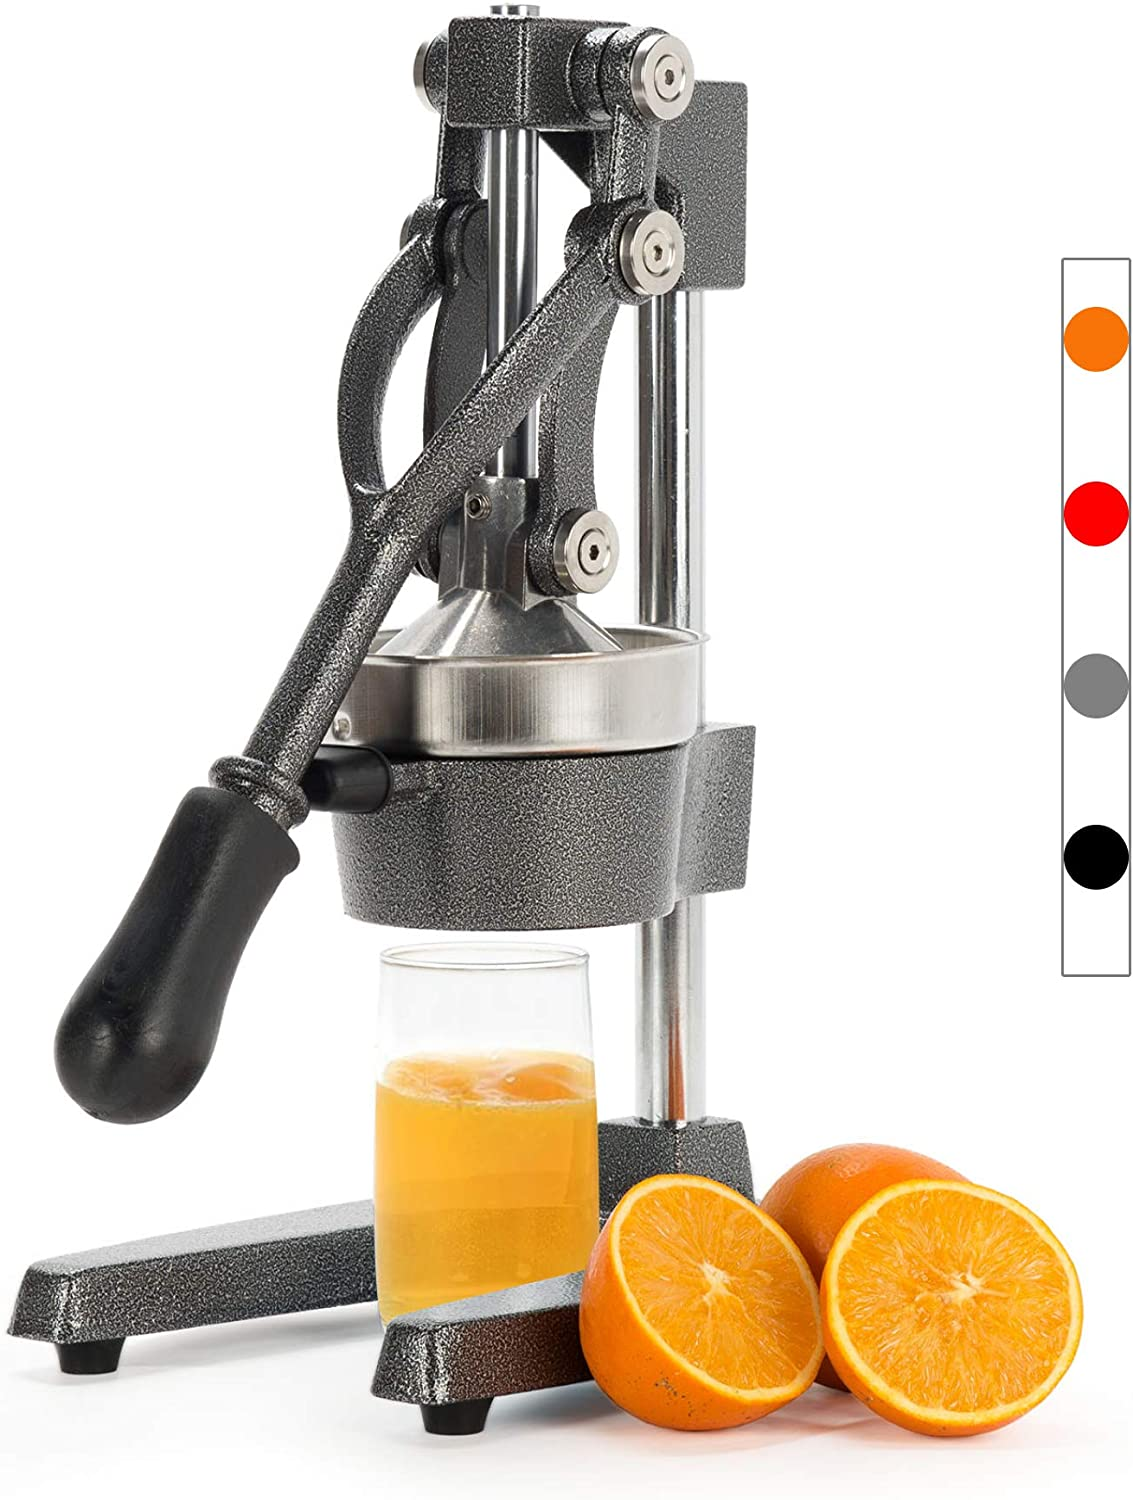 71C wiYXu0L. AC SL1500 Best Hand Press Juicer 2021 Review